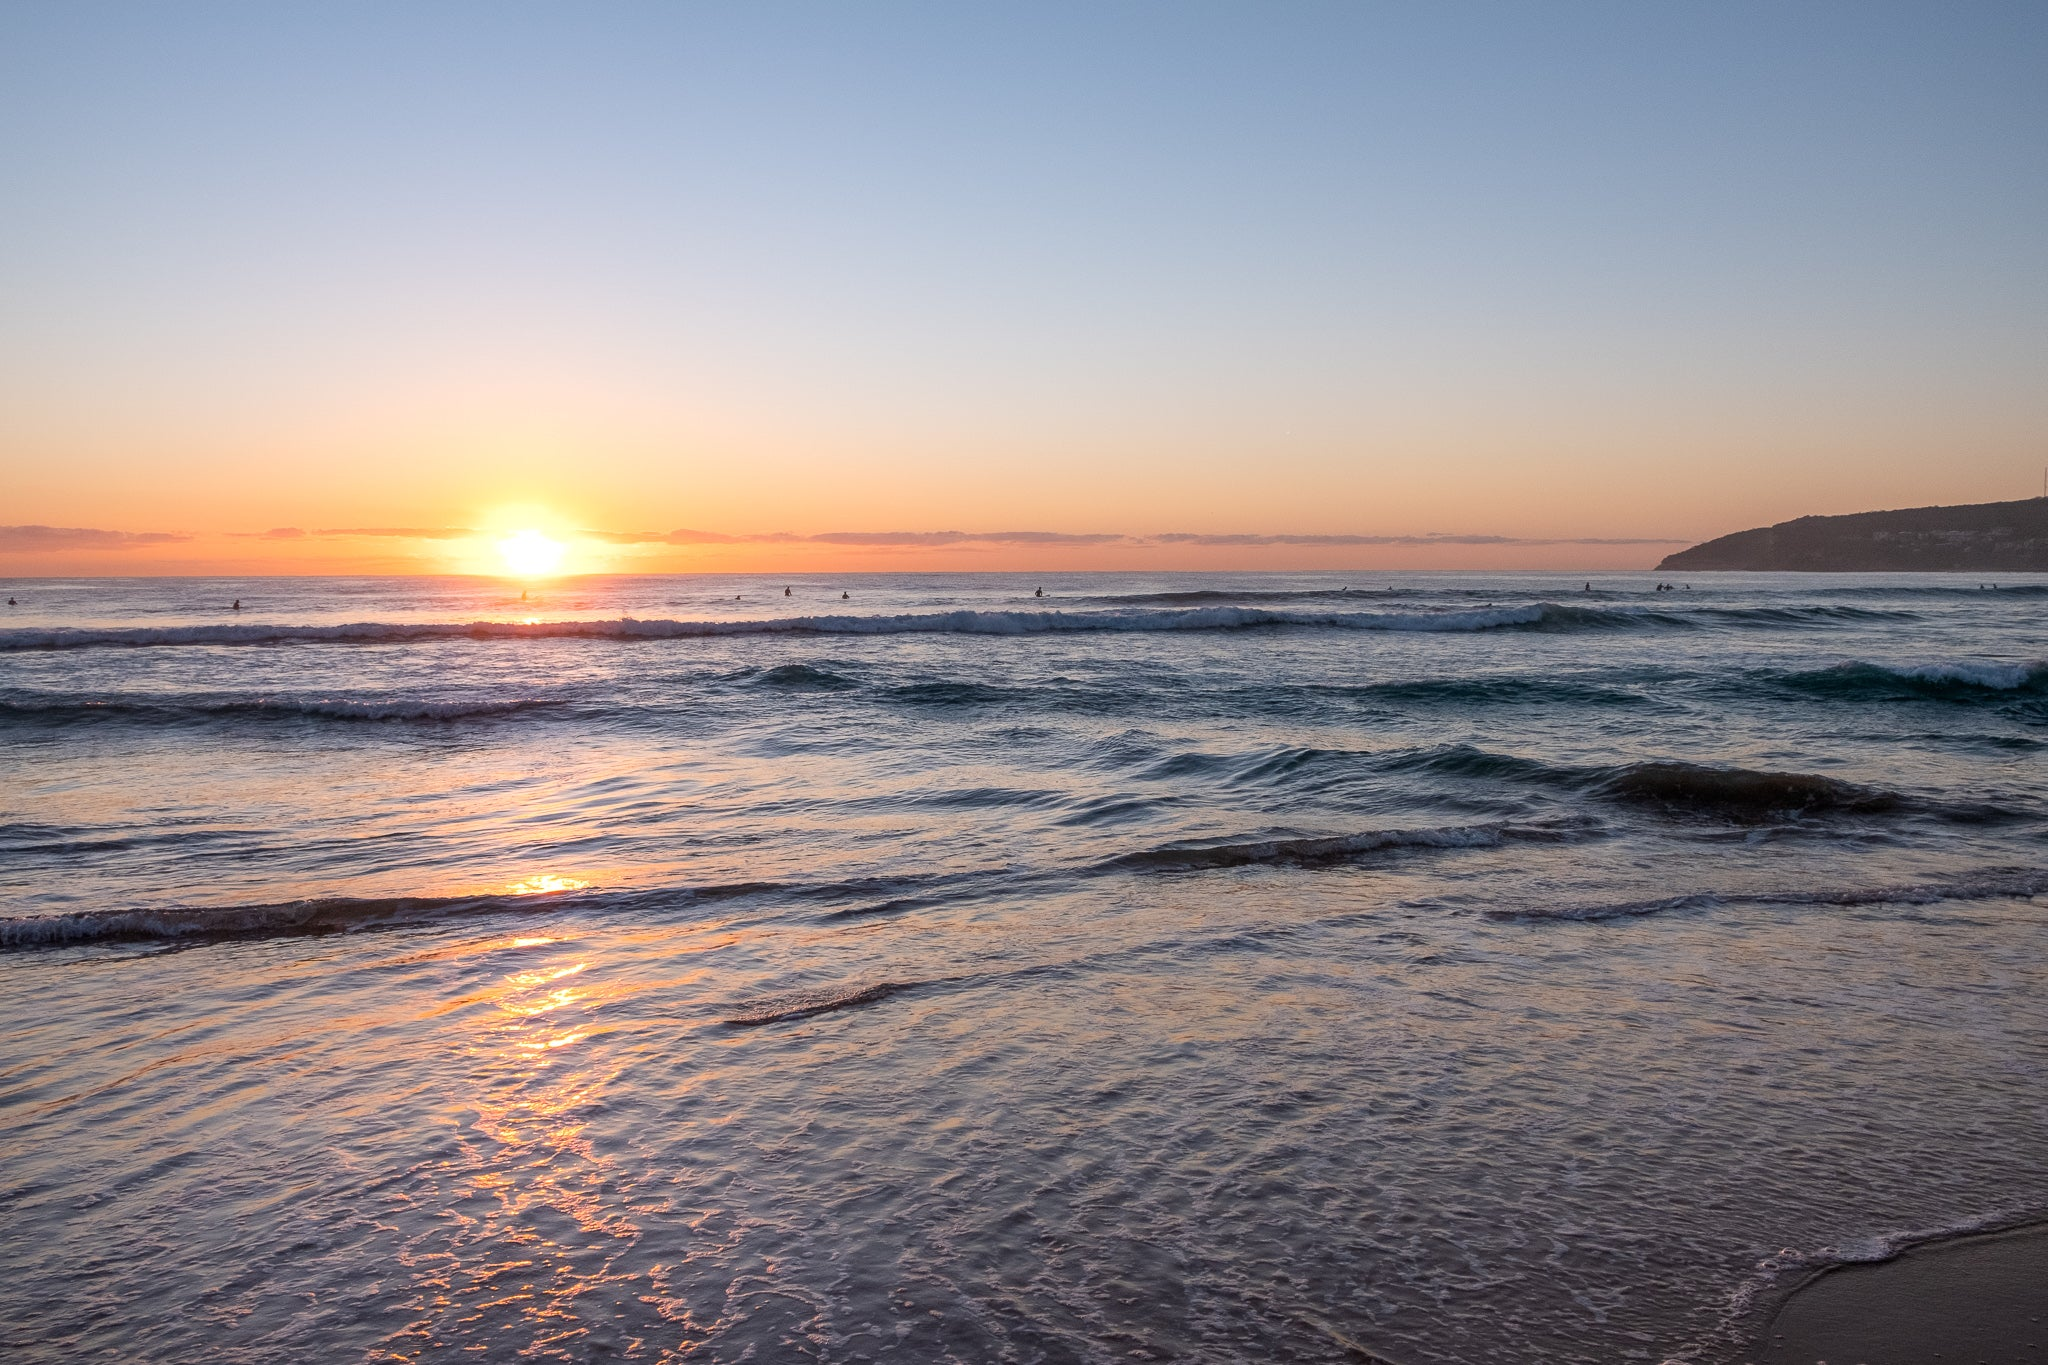 Sunrise photo from 22nd October 2019 at Manly Beach, Sydney